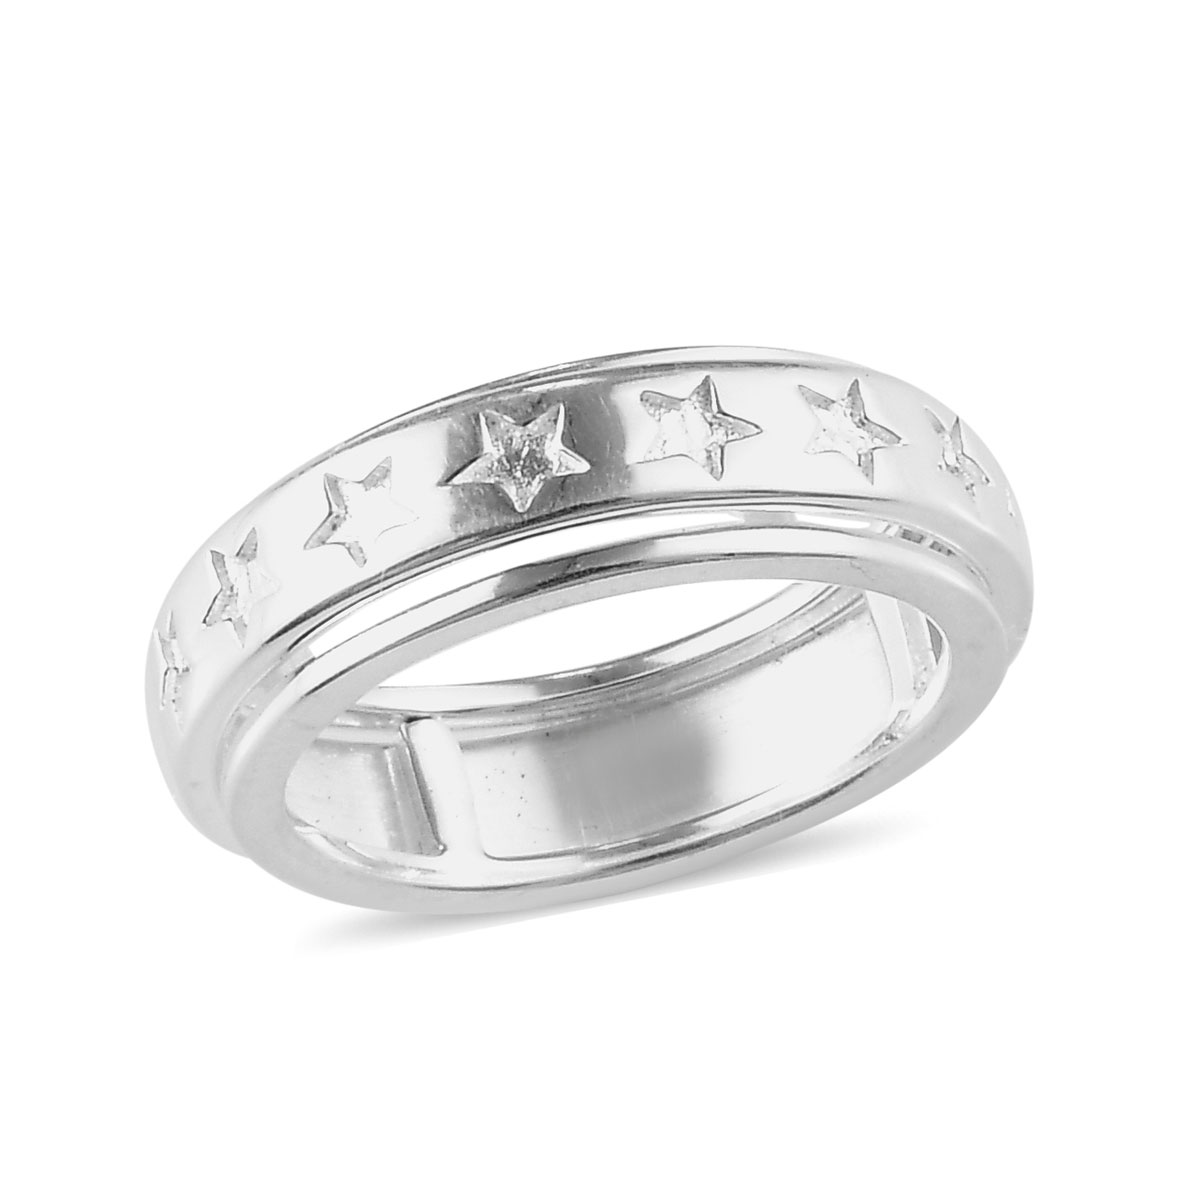 USA Seller Spinner Ring Sterling Silver 925 Best Price Jewelry Gift Selectable